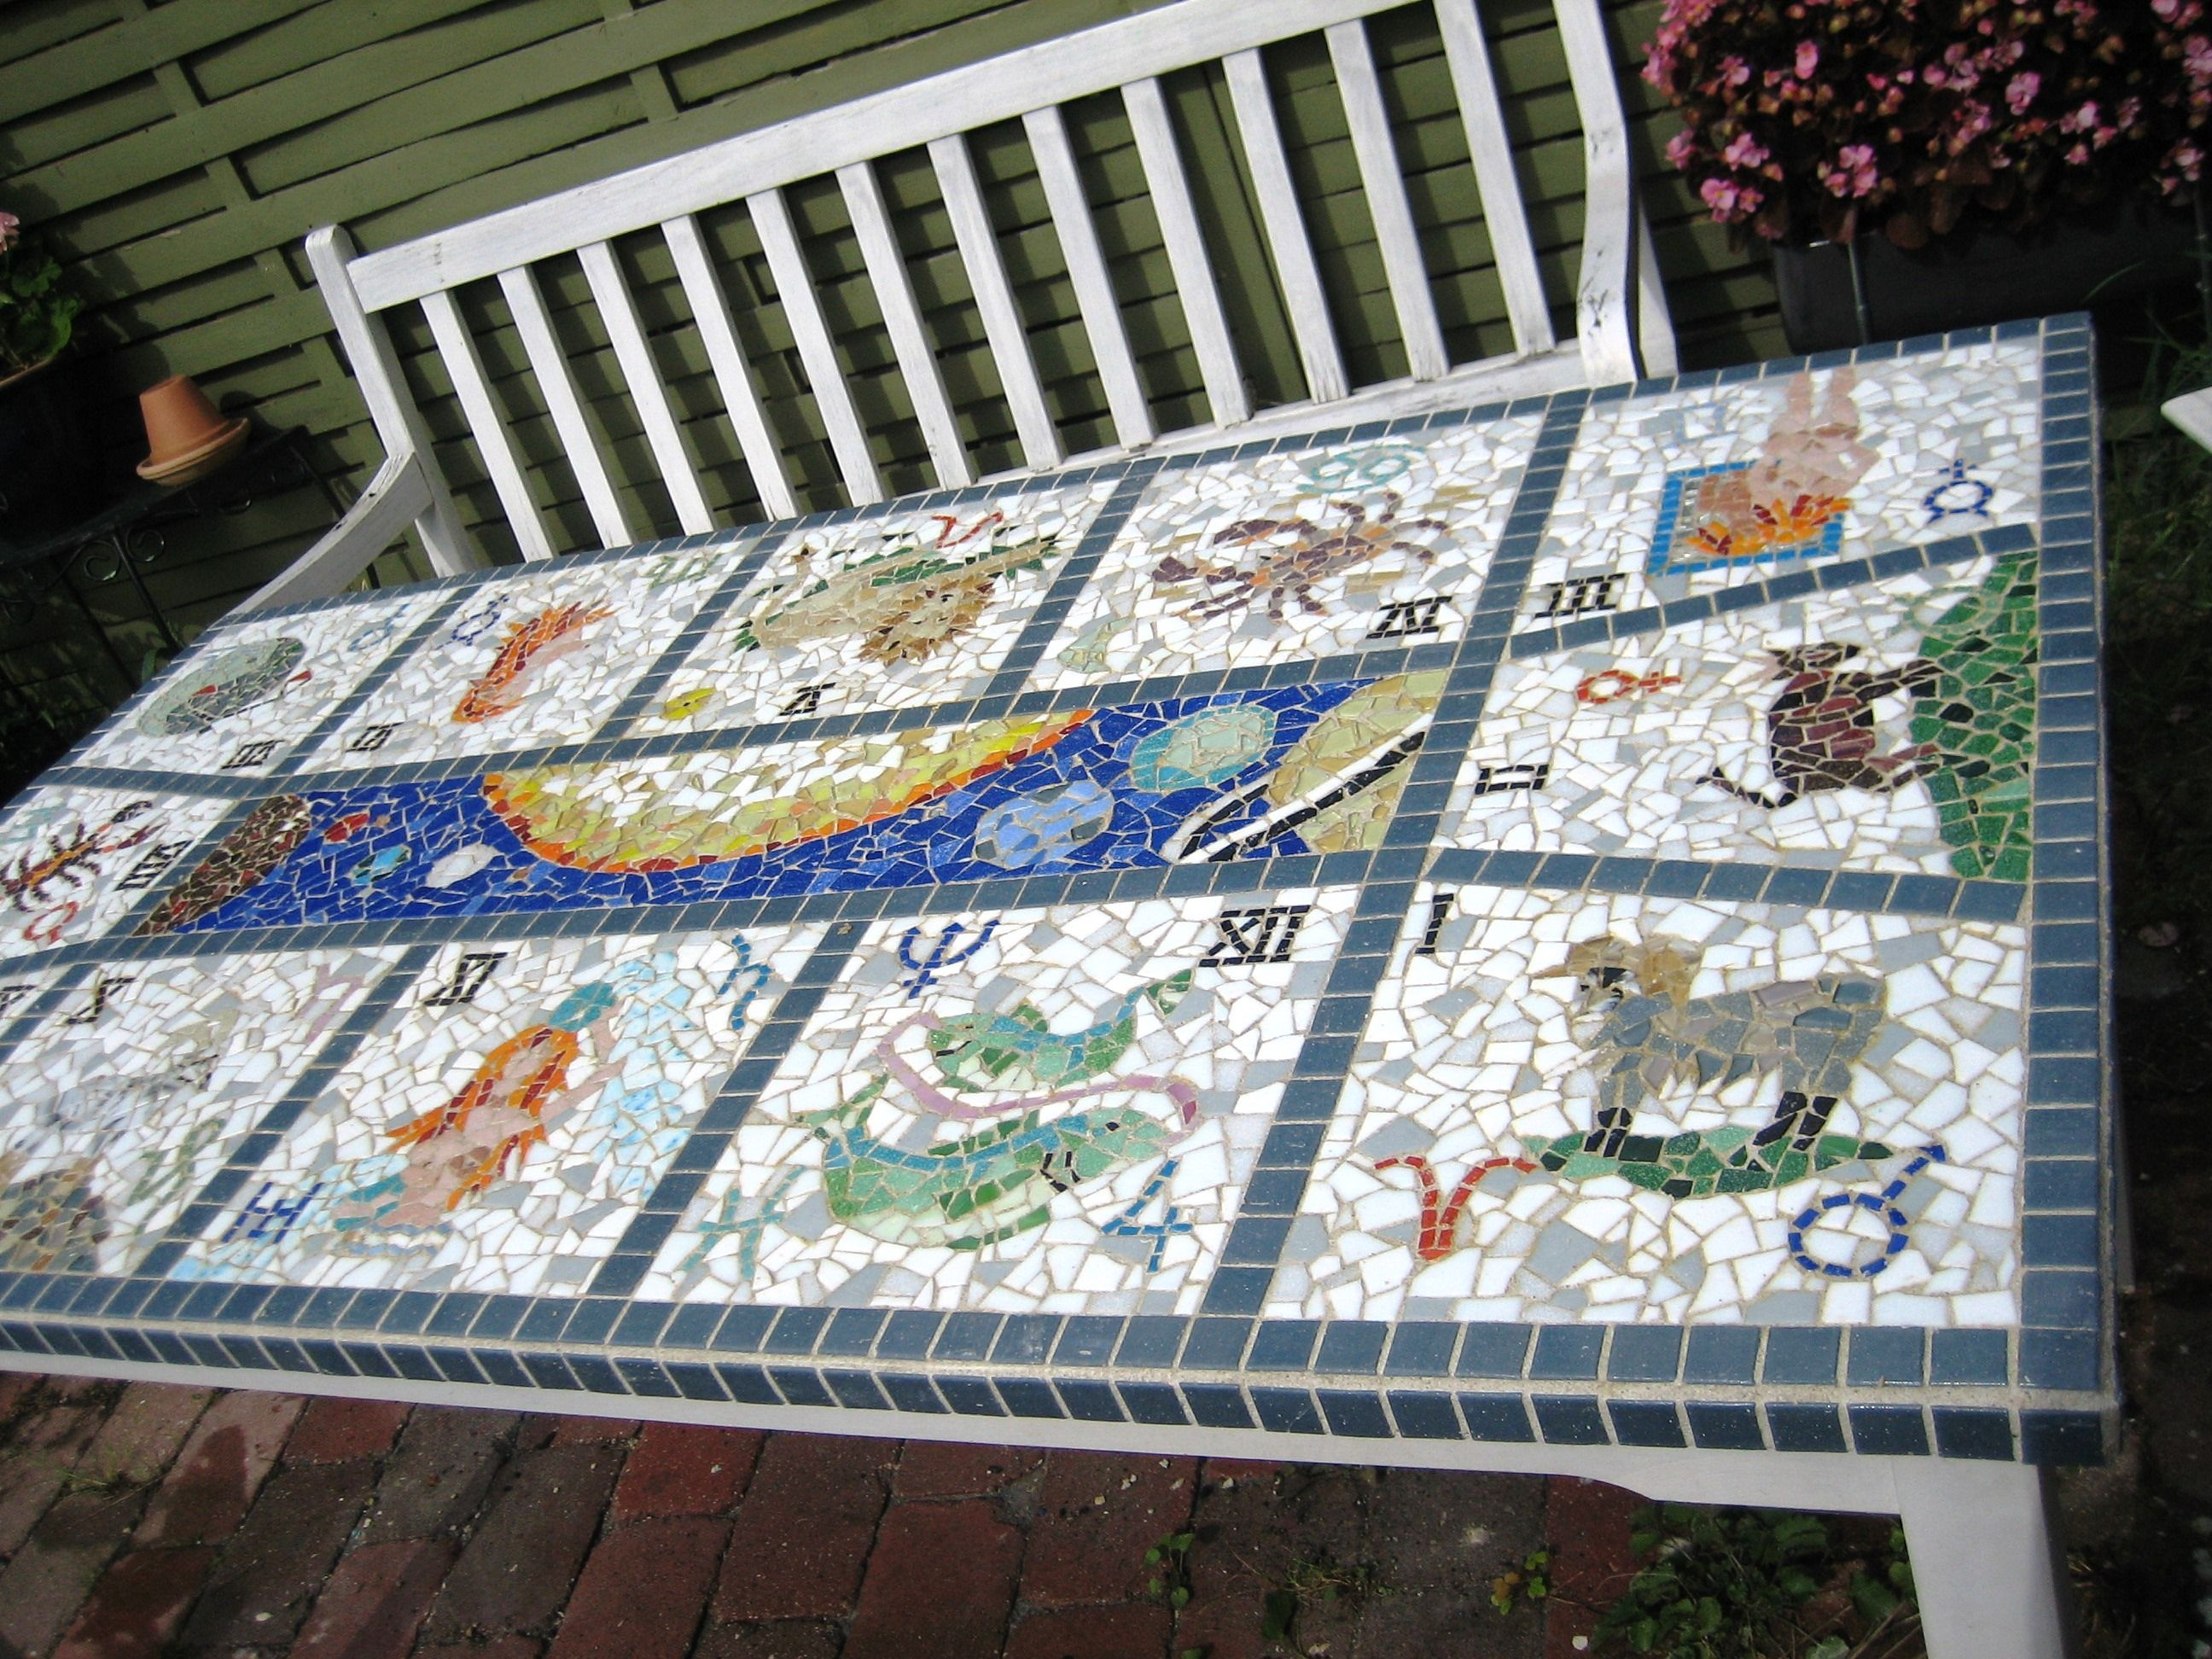 Mosaik havebord med stjernetegn Astrologi - Mosaic garden table with starsign zodiac Astrology ...